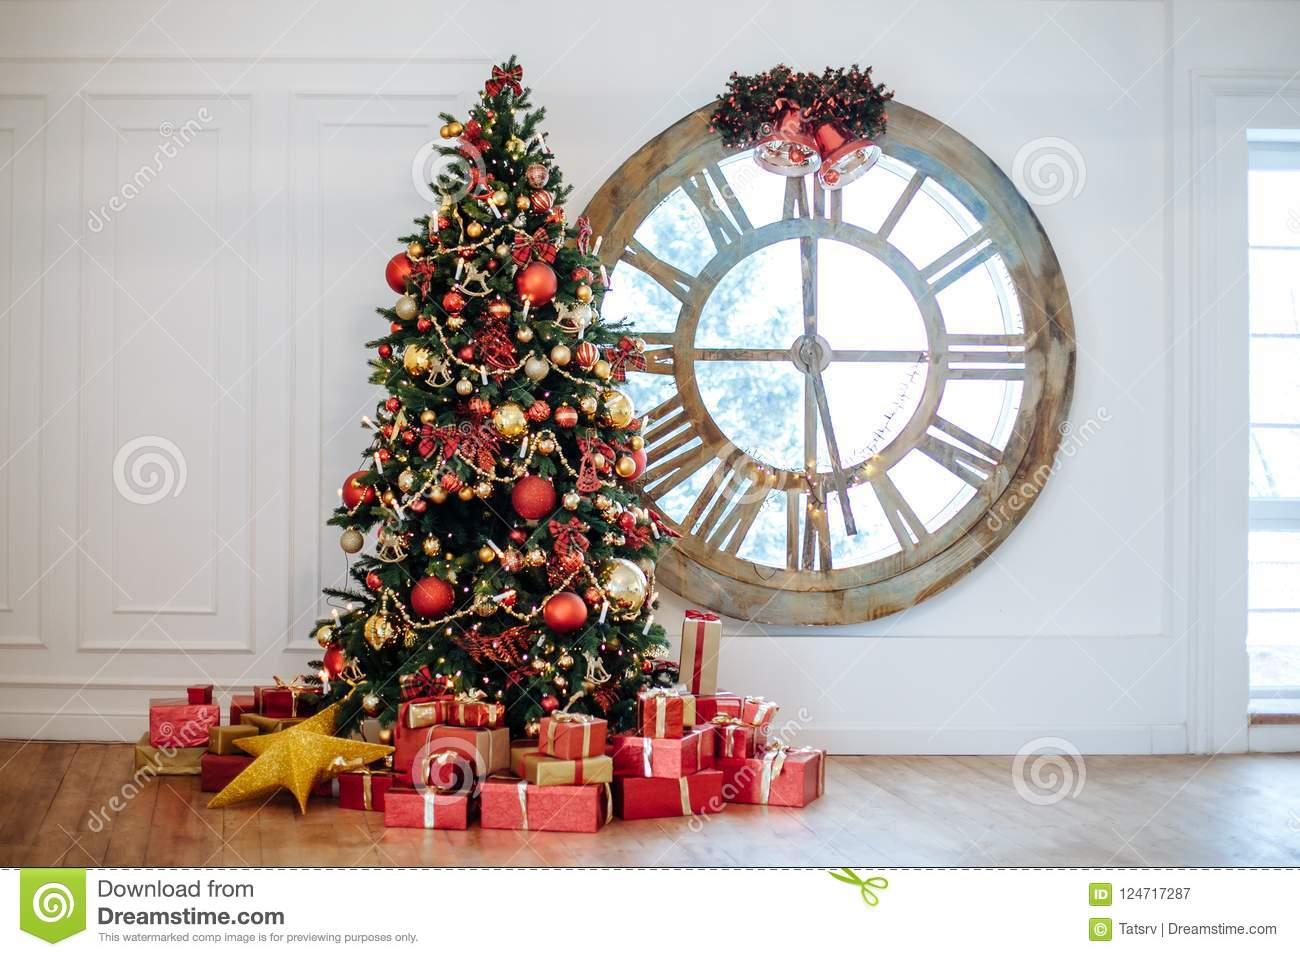 Beautiful Christmas Living Room With Decorated Christmas Tree Gifts In Front Of Whate Wall New Year Tree With Red And Gold Decor Stock Image Image Of Decorated Place 124717287